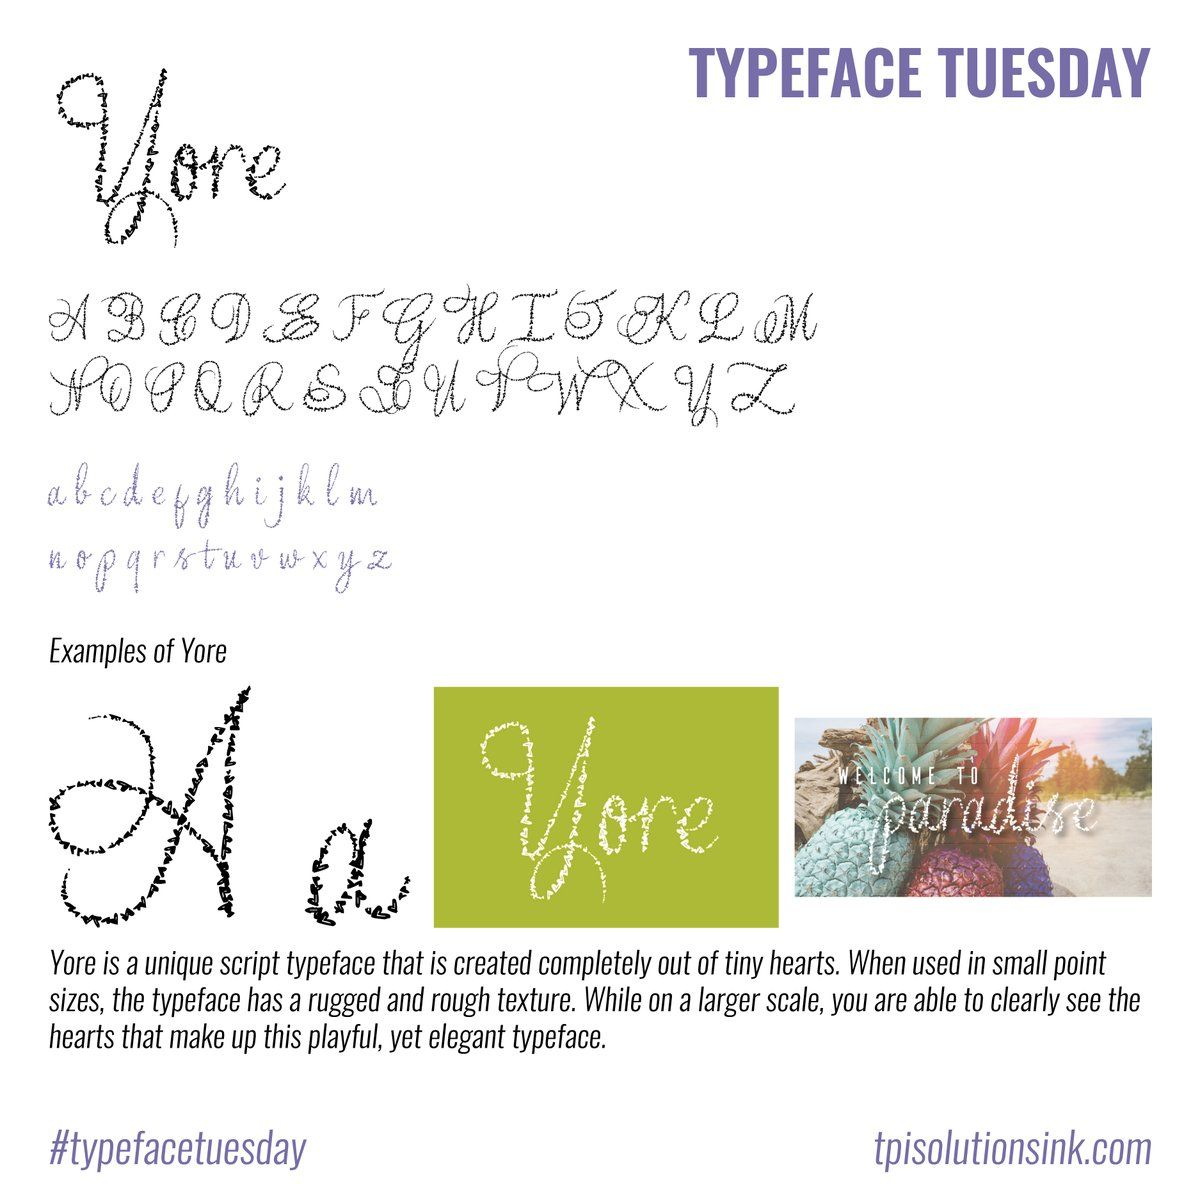 Happy Valentine's Day & Happy #TypefaceTuesday! Our #font